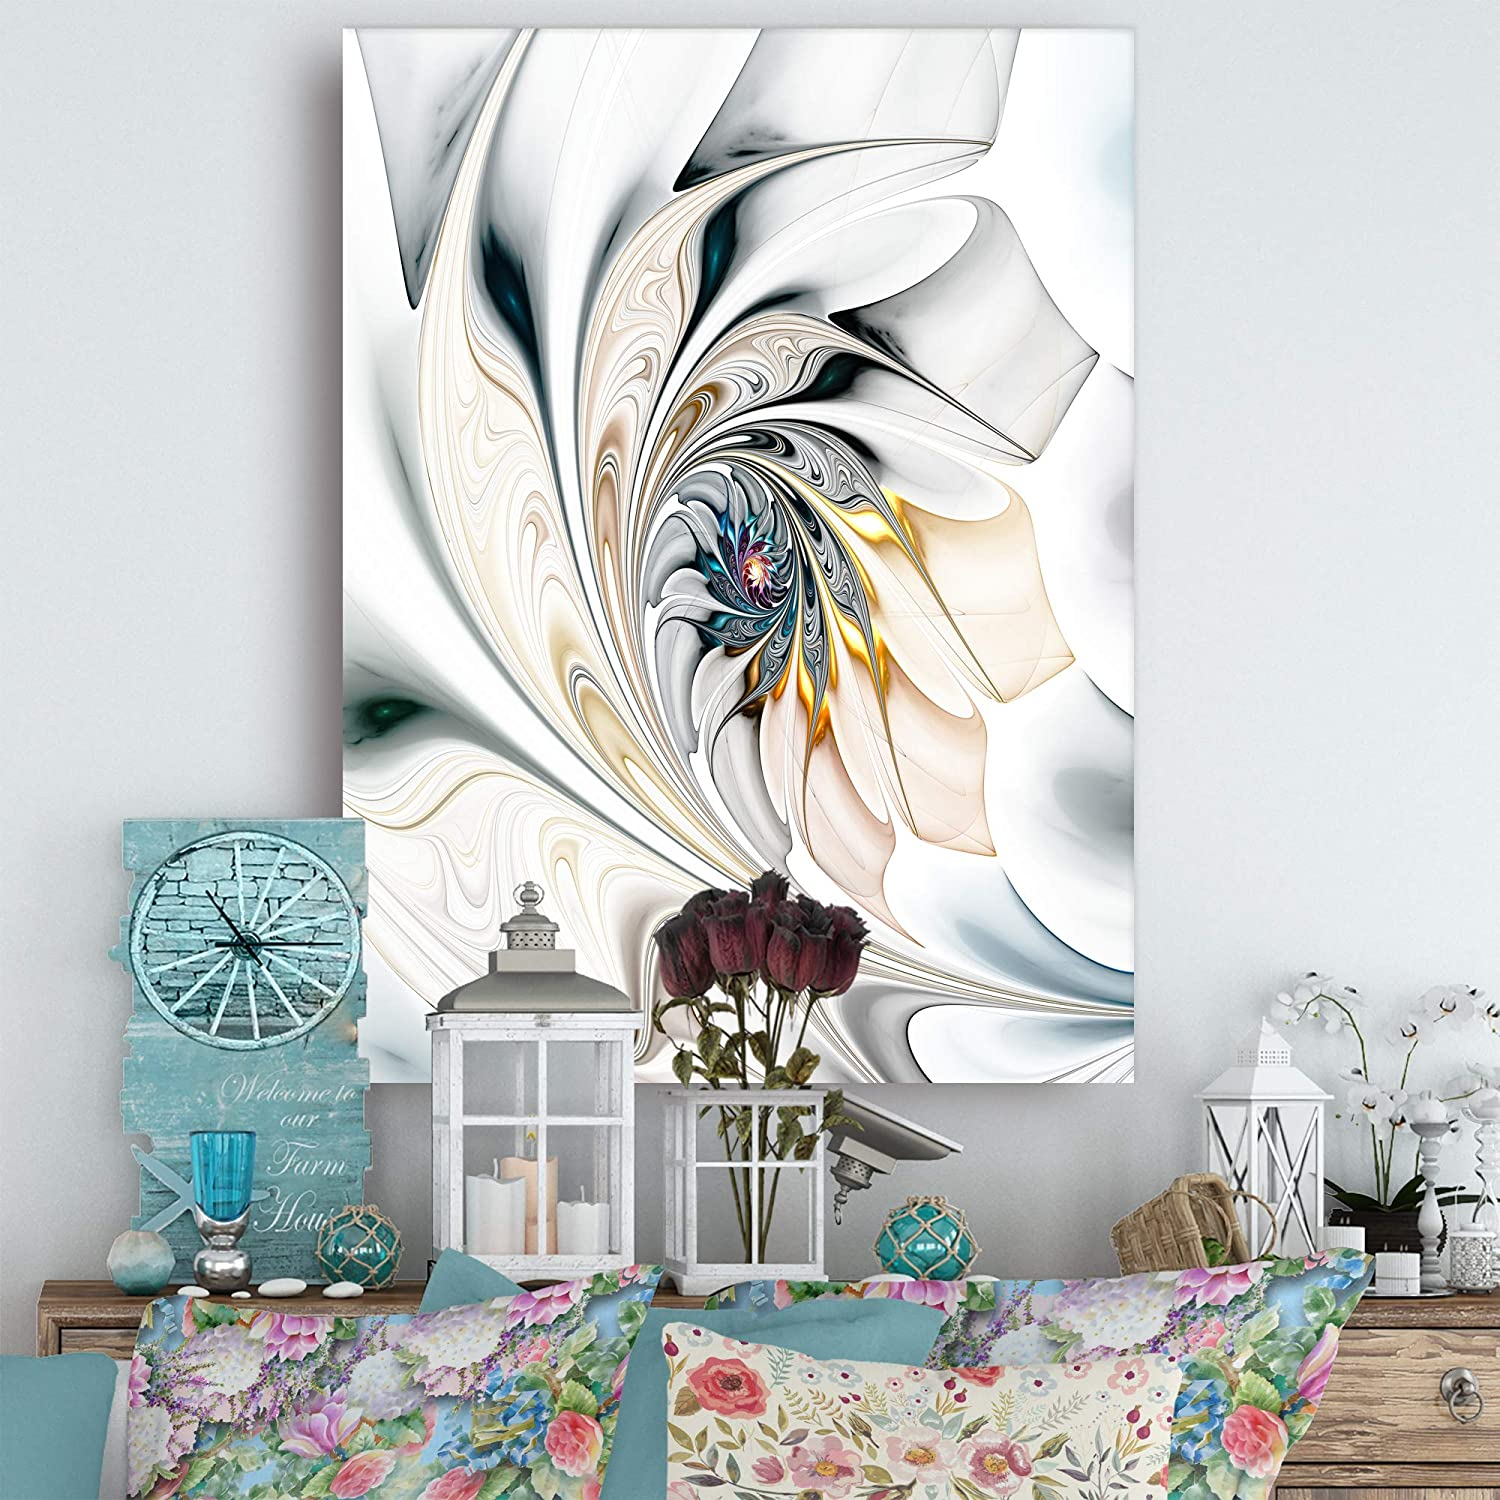 Amazon Com Design Art White Stained Glass Floral Wall Art Canvas 30 X 40 Posters Prints